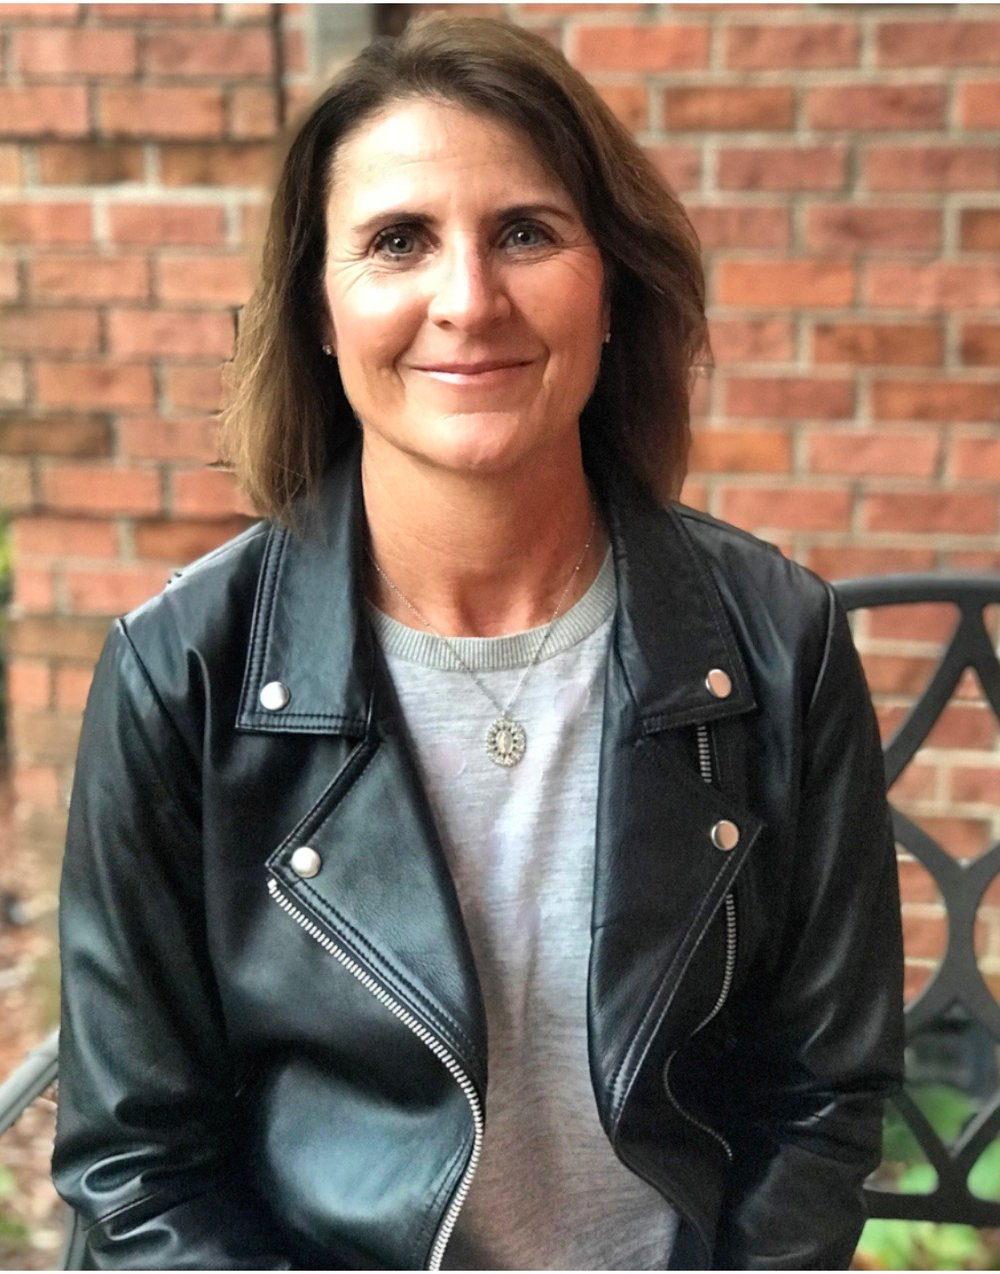 Laura is rocking her LA Made leather moto jacket and VSA necklace.